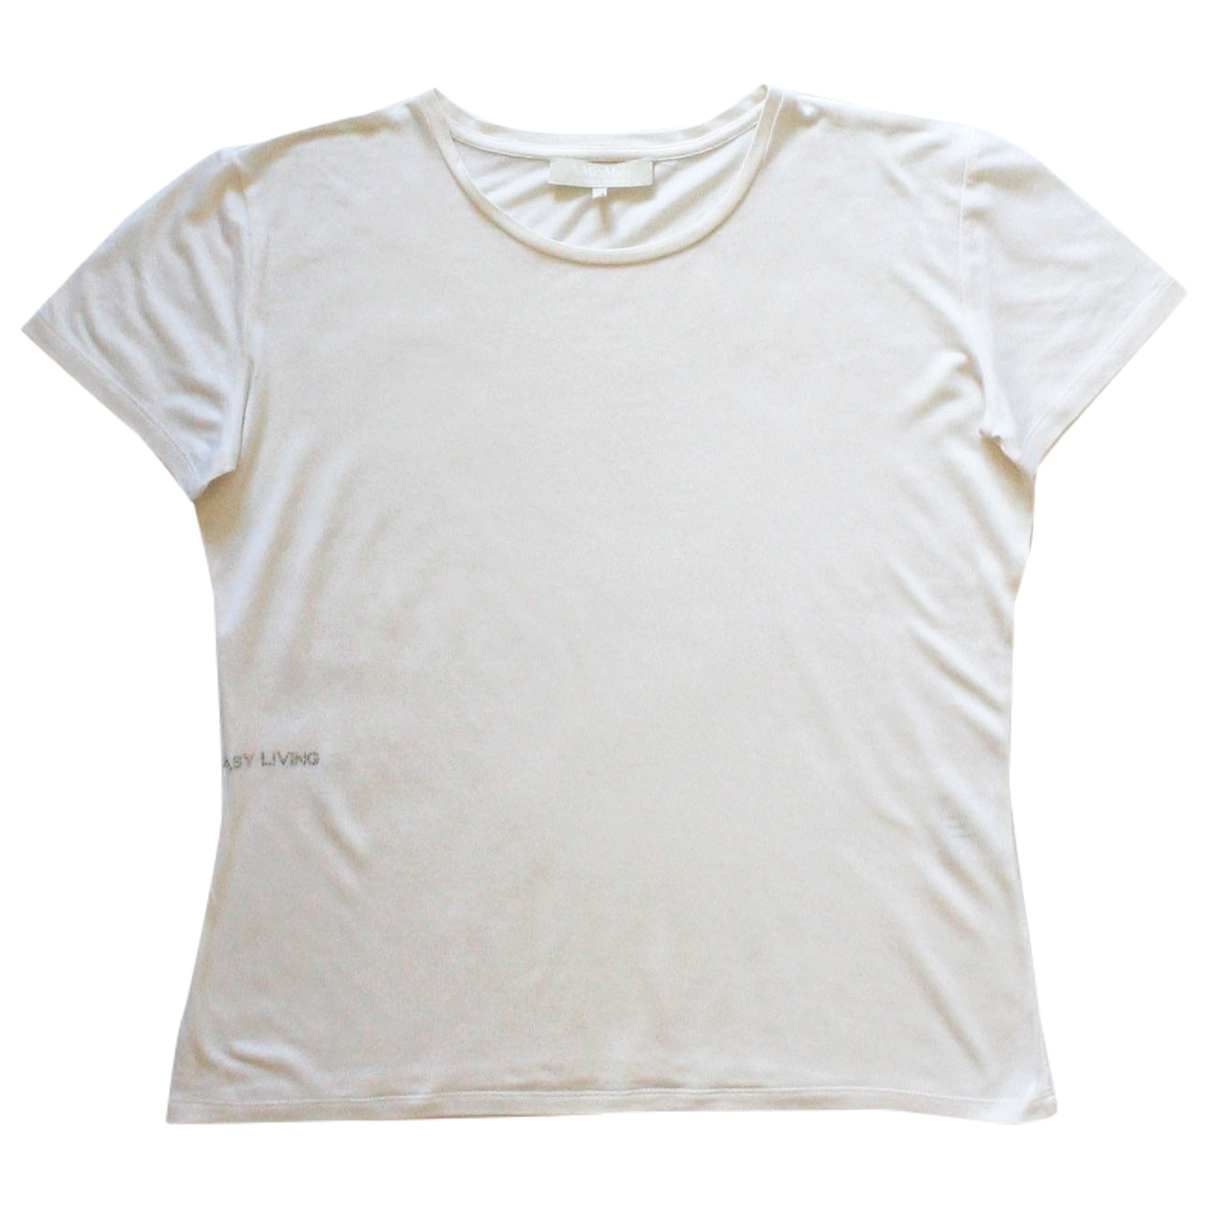 Max Mara 's \N White  top for Women L International